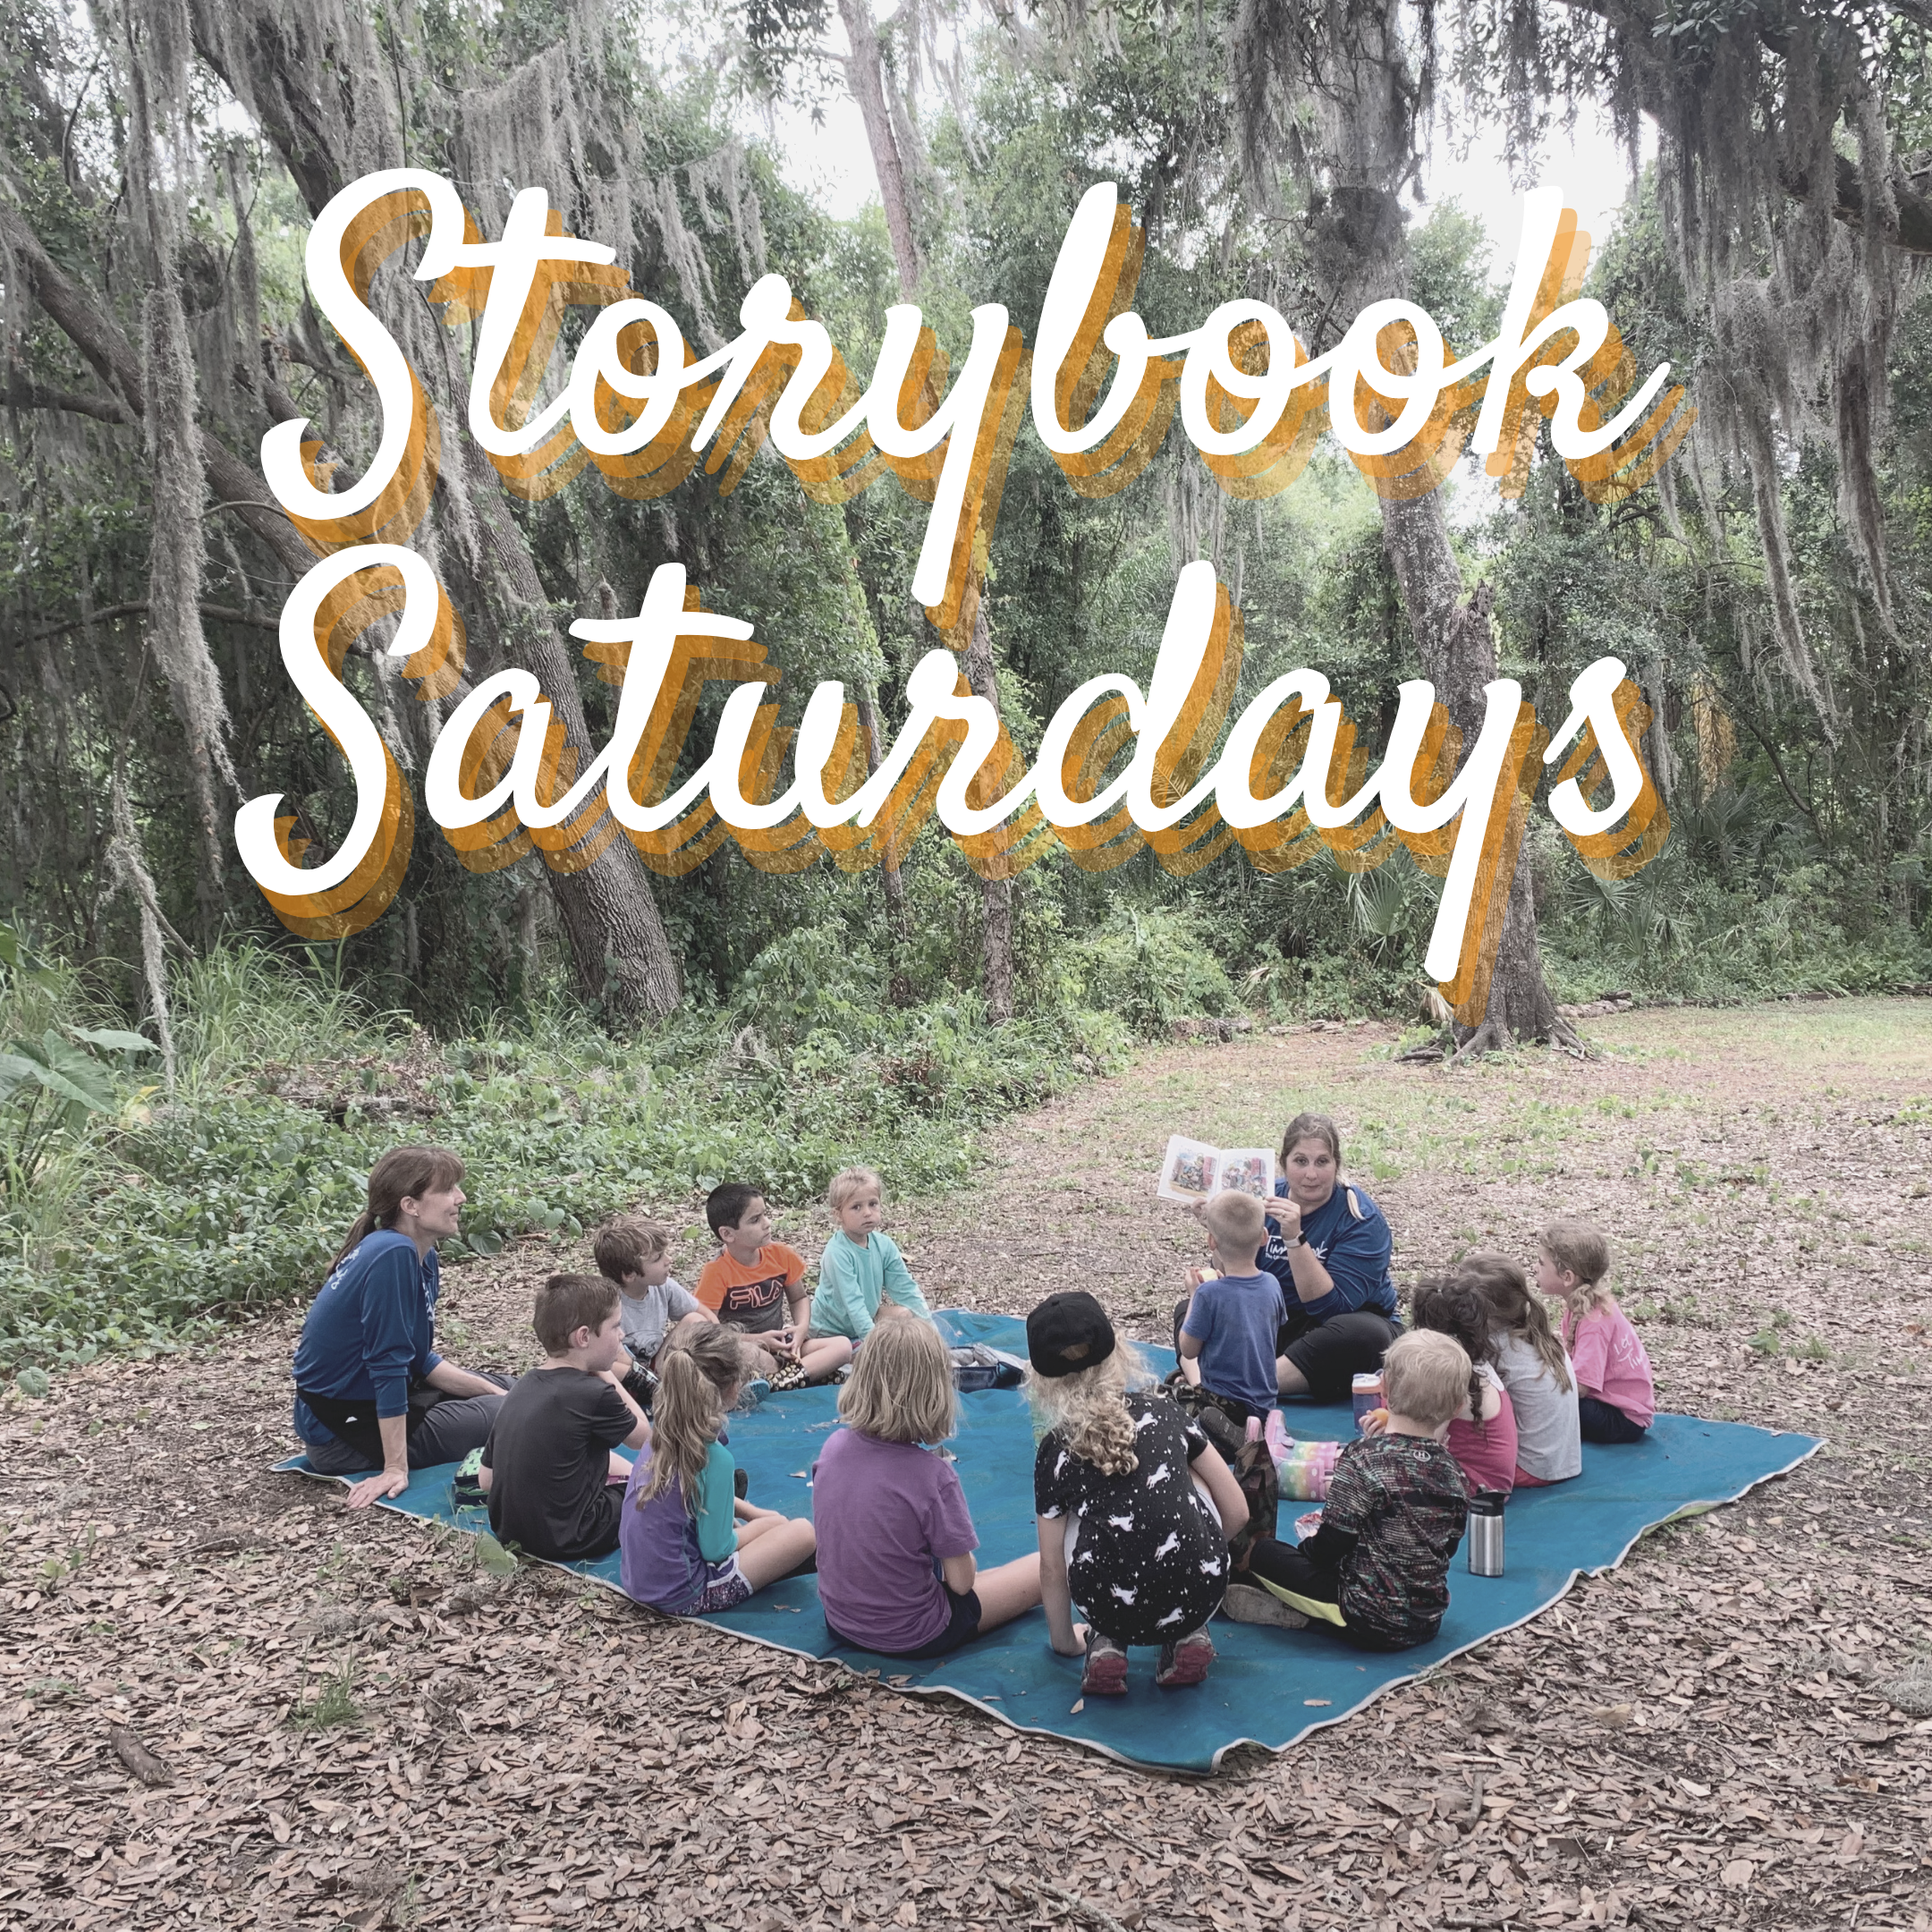 Storybook - Feb. 6 - TimberNook West Central Florida